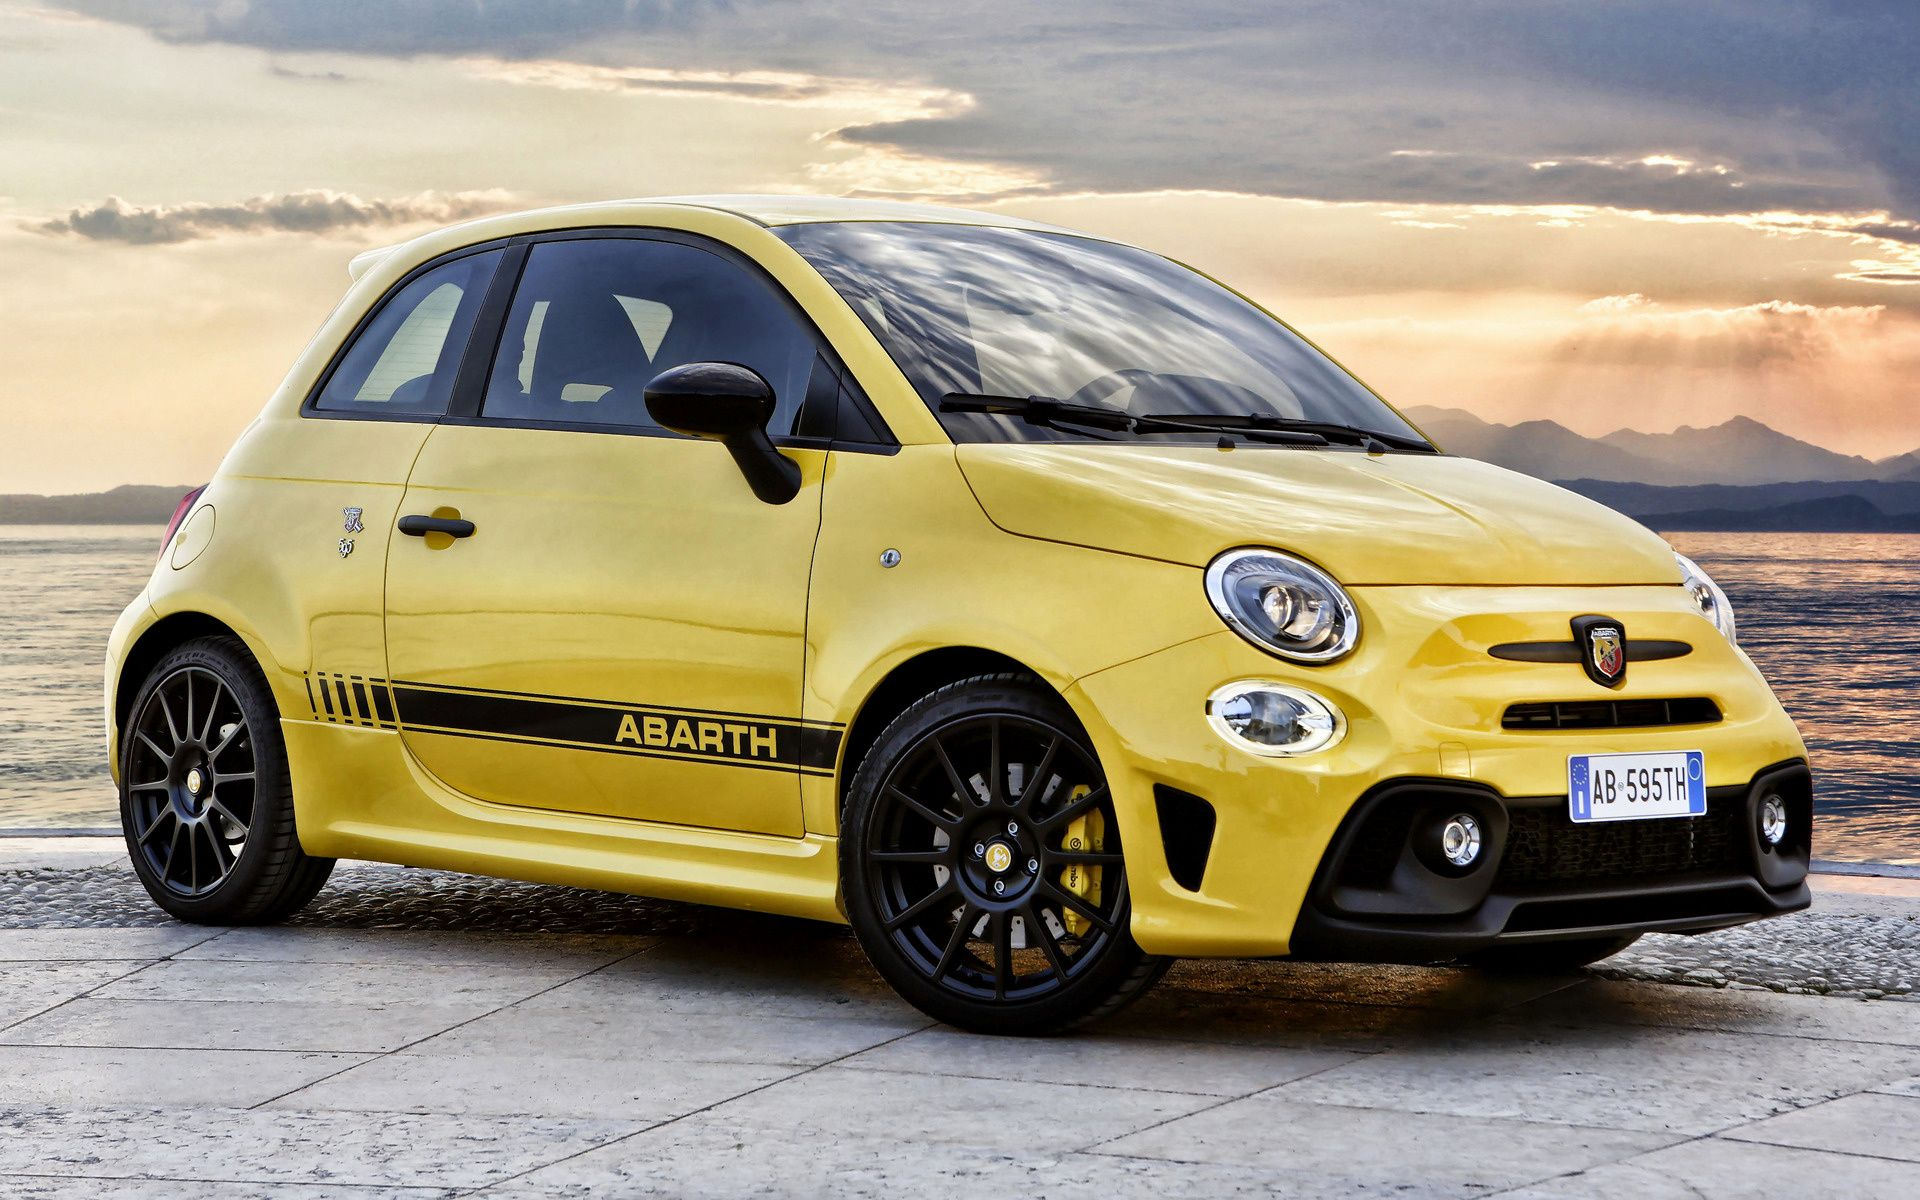 2016 Abarth 595 Competizione With Images Fiat Fiat 500 Fiat Cars